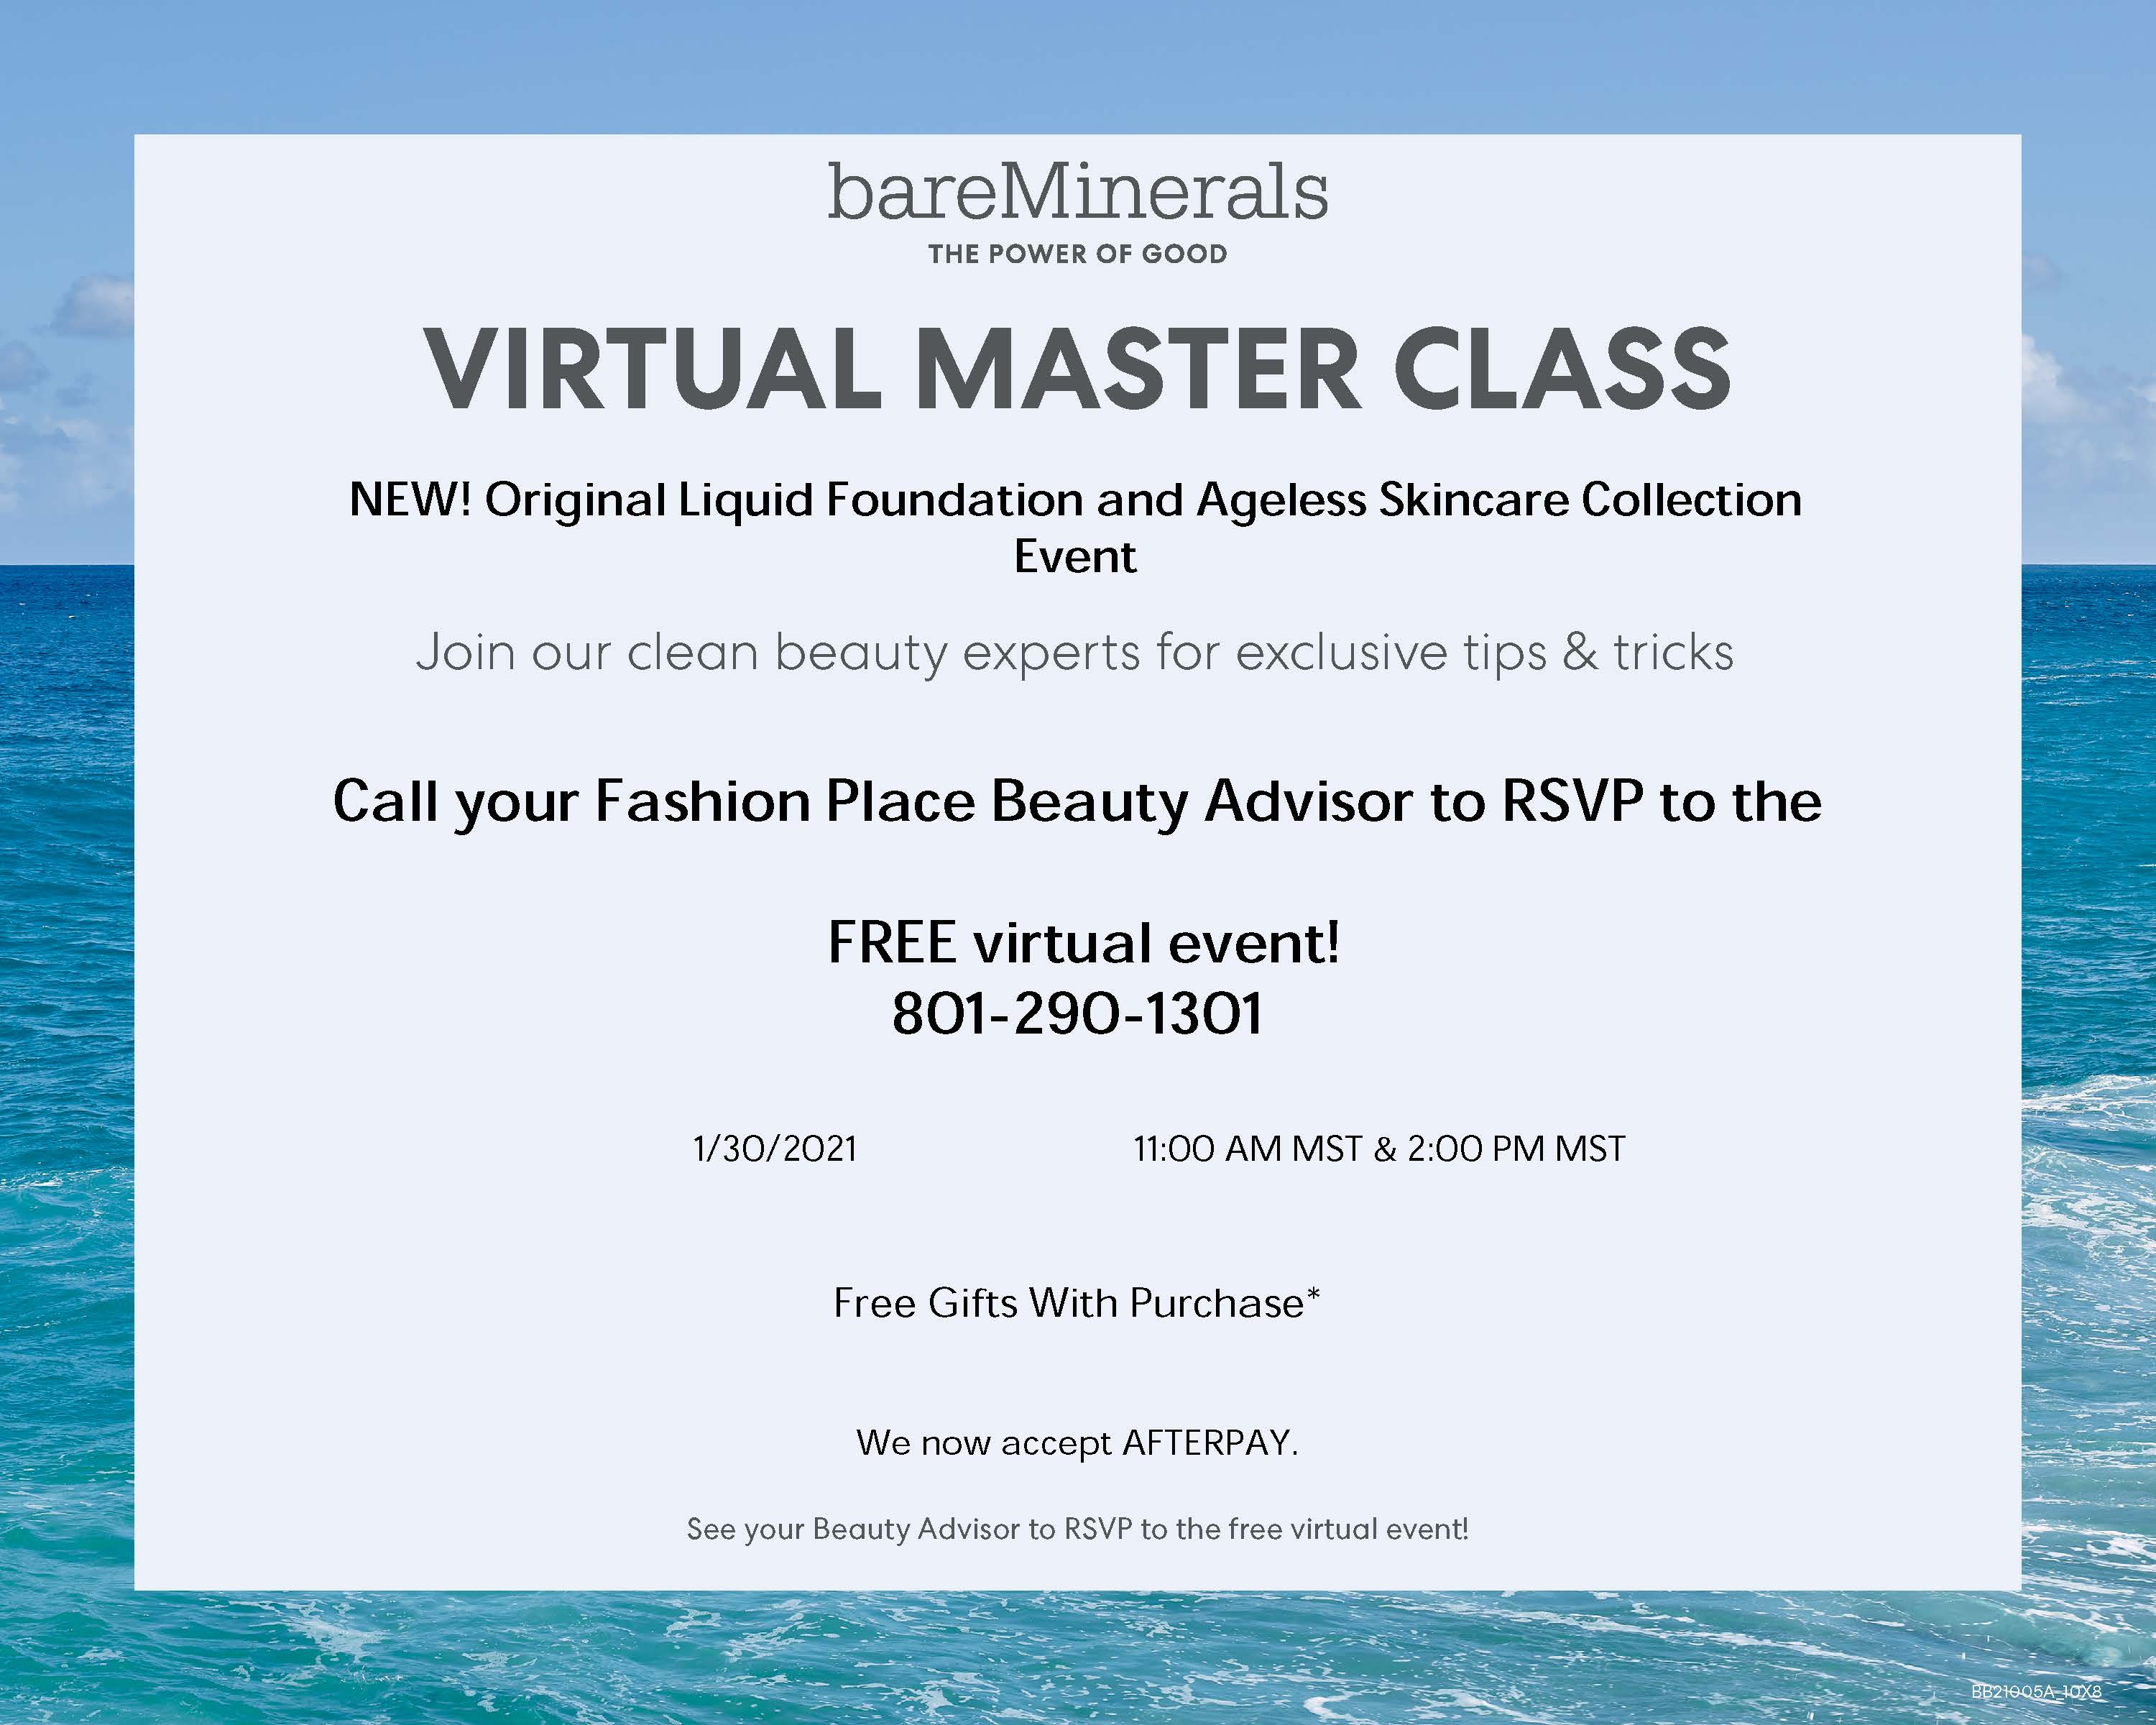 Virtual Master Class from bareMinerals